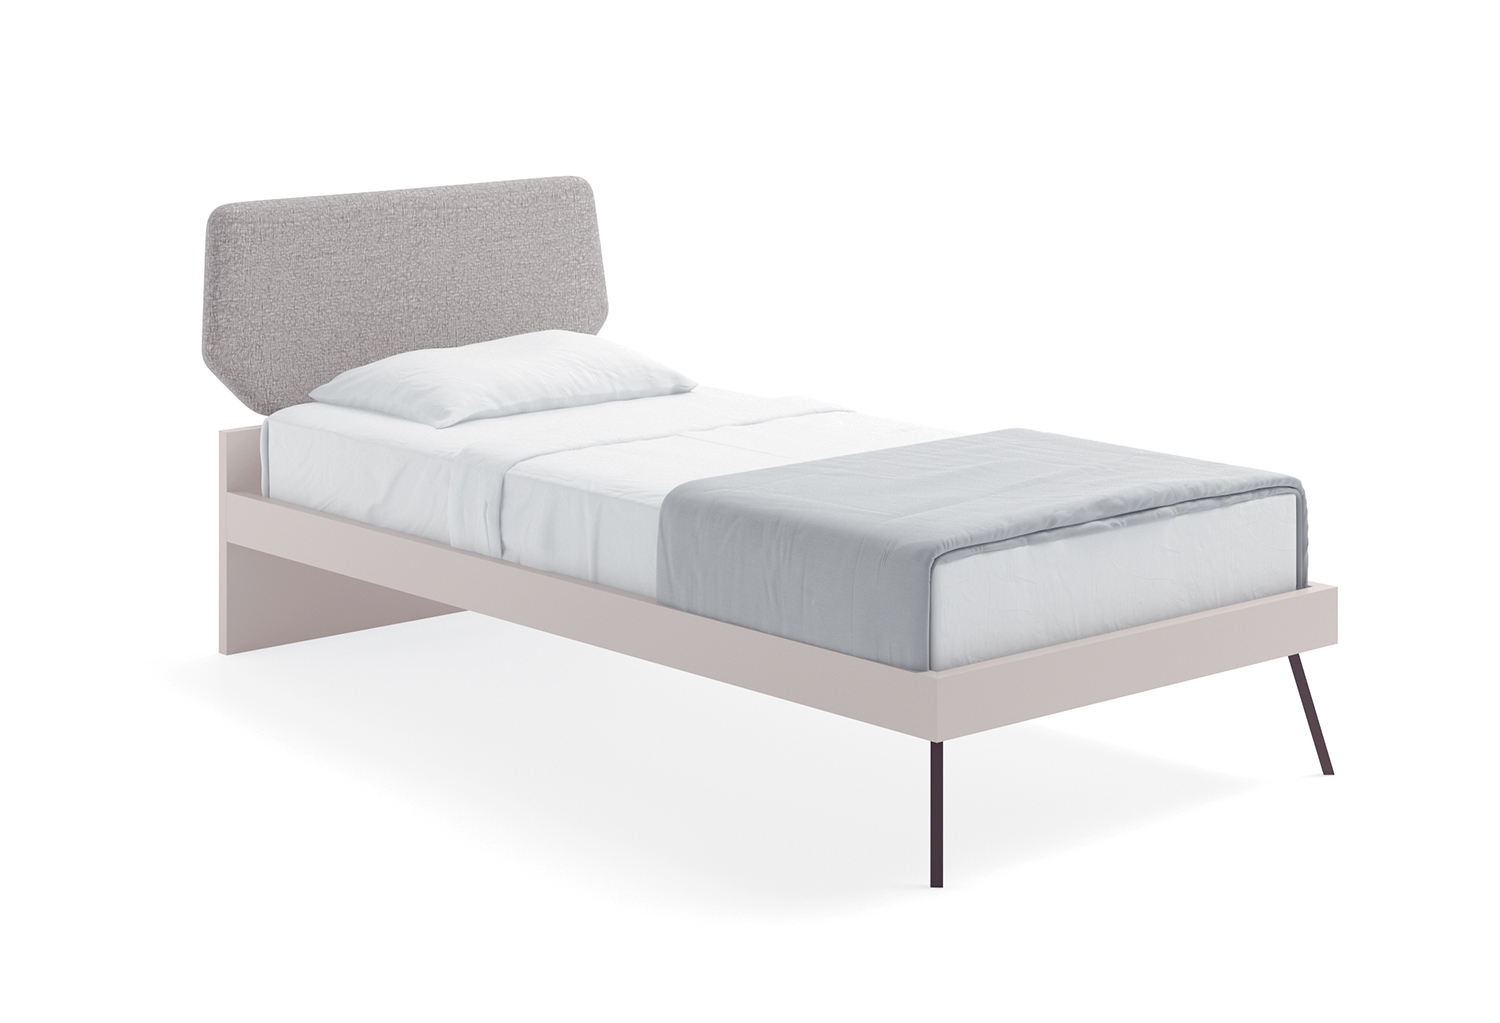 Single bed Cale in bicolour design with upholstered headboard